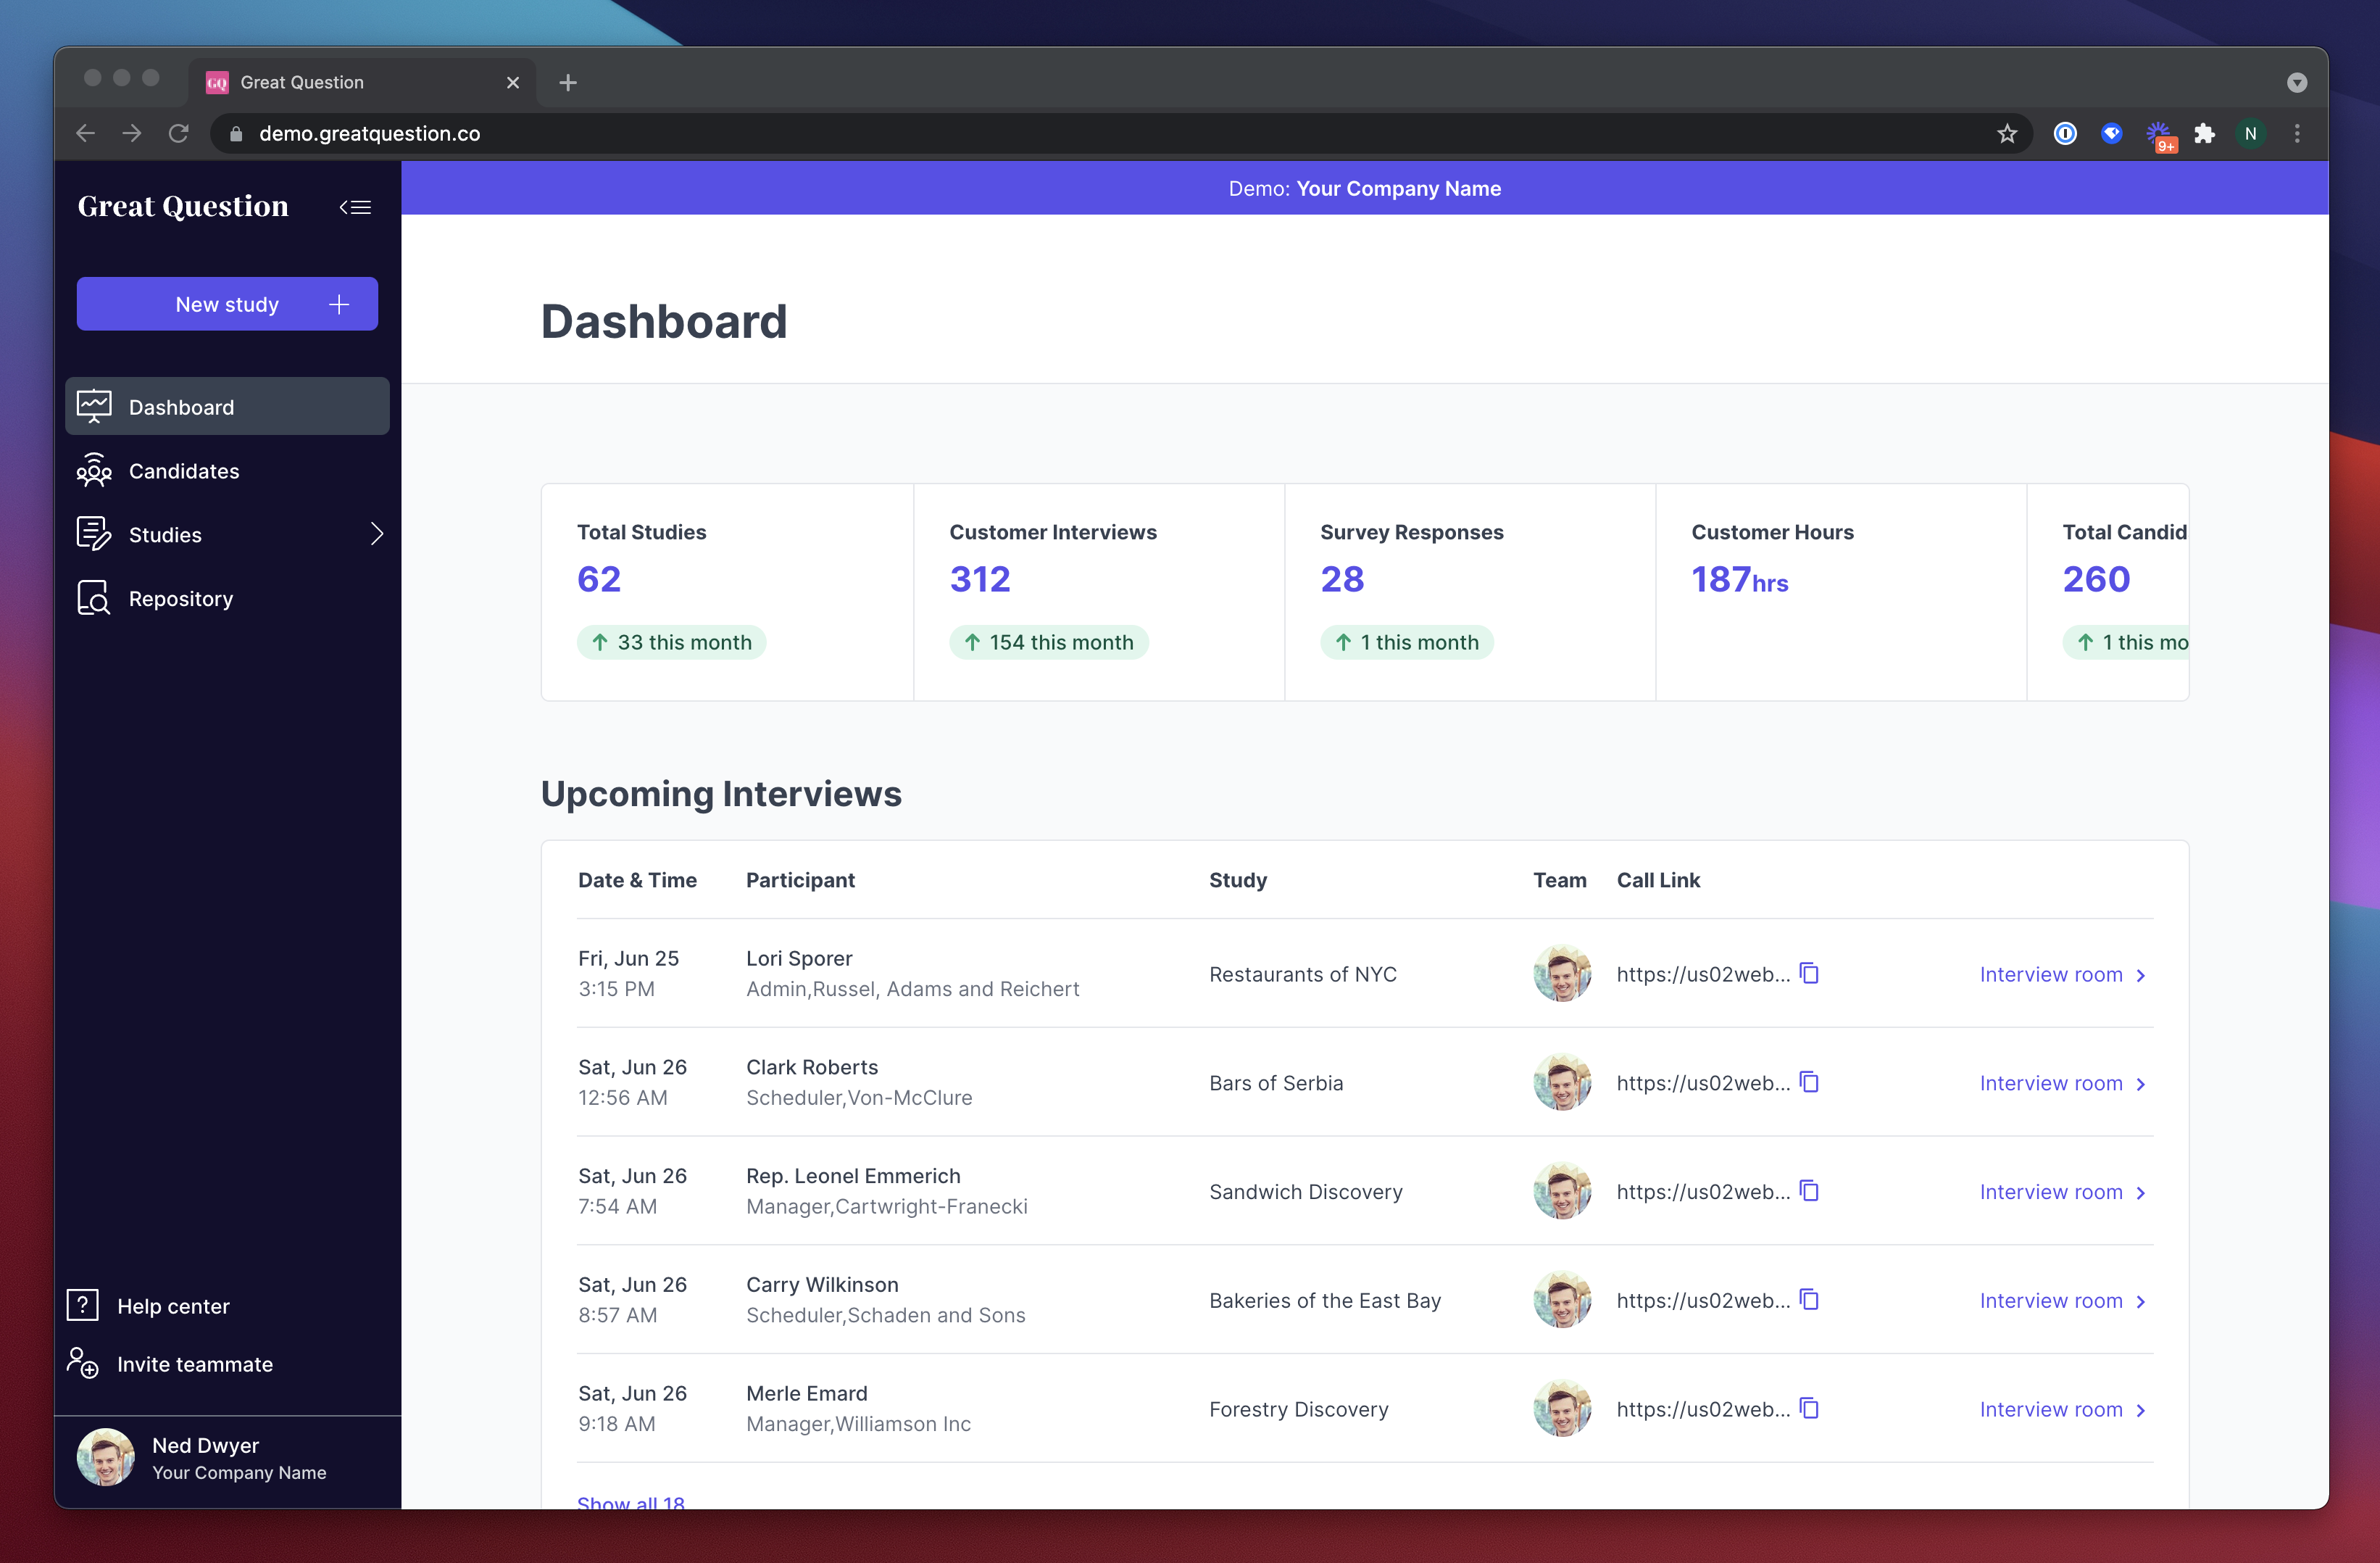 Great Question's is a great dashboard